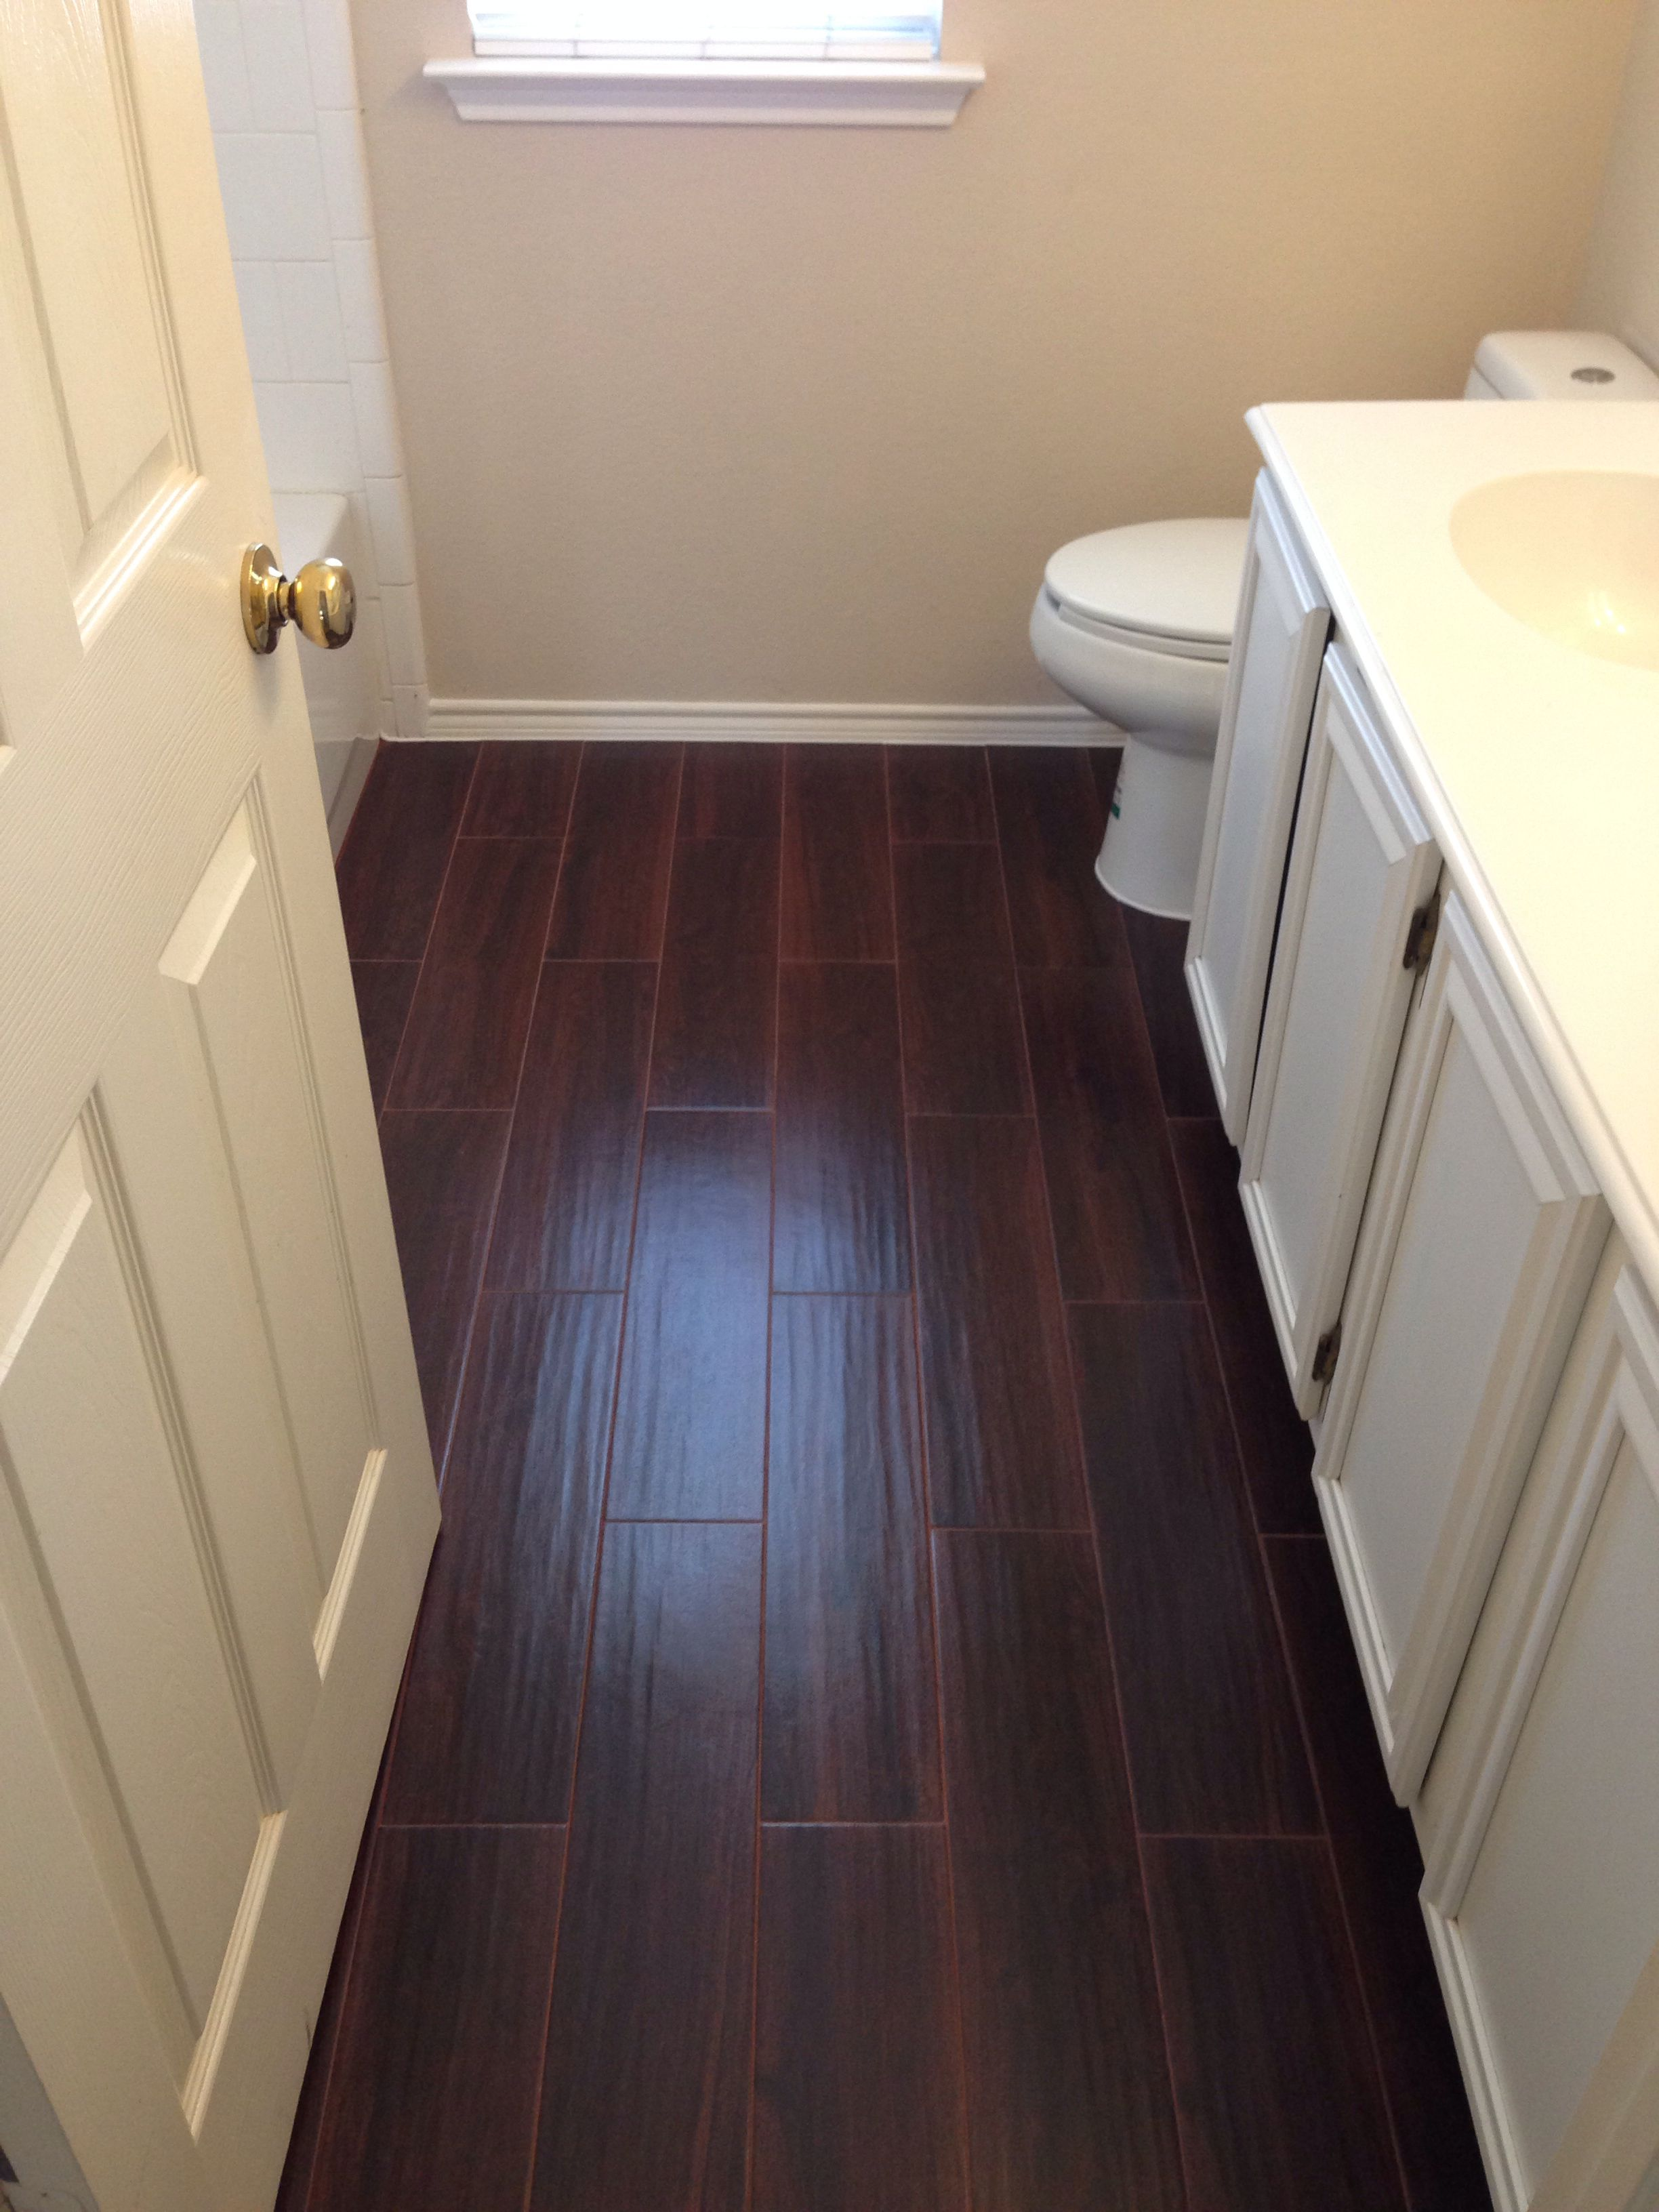 We used porcelain tile that looks like hardwood for our ...